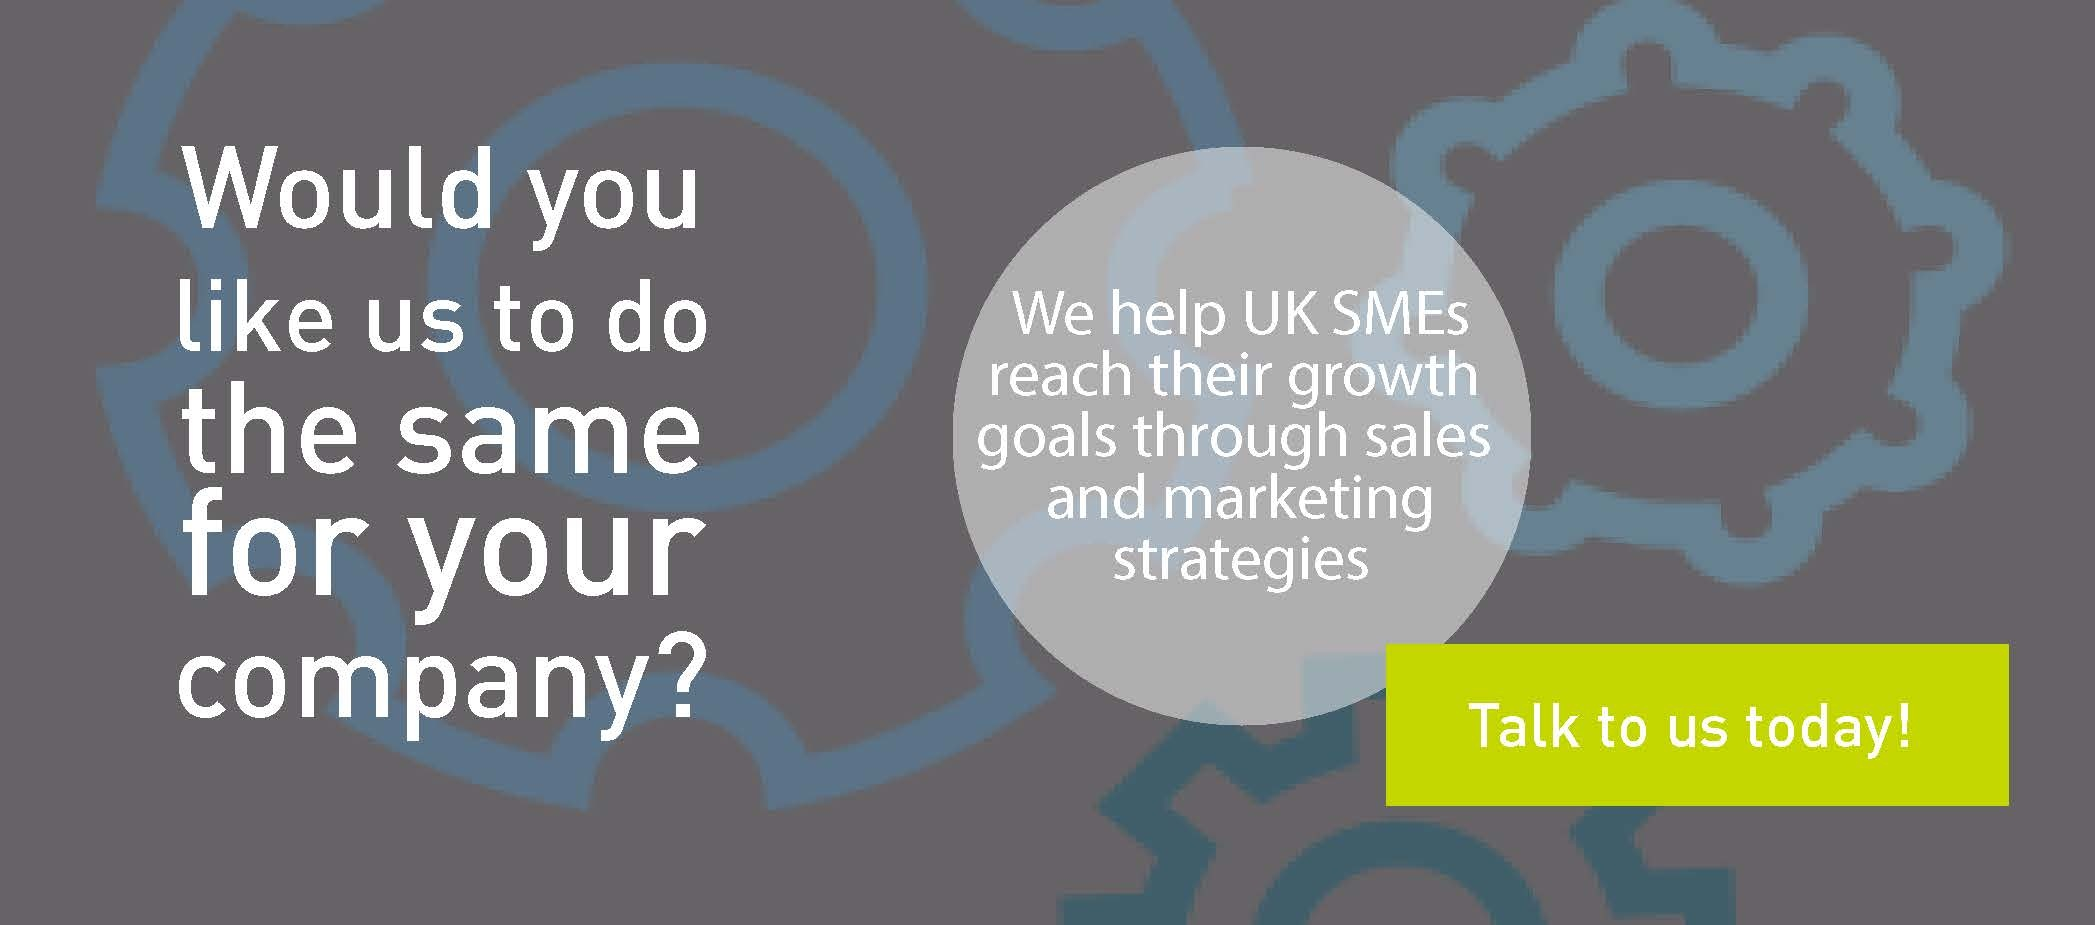 We help UK smes reach their growth goals through sales and marketing strategies